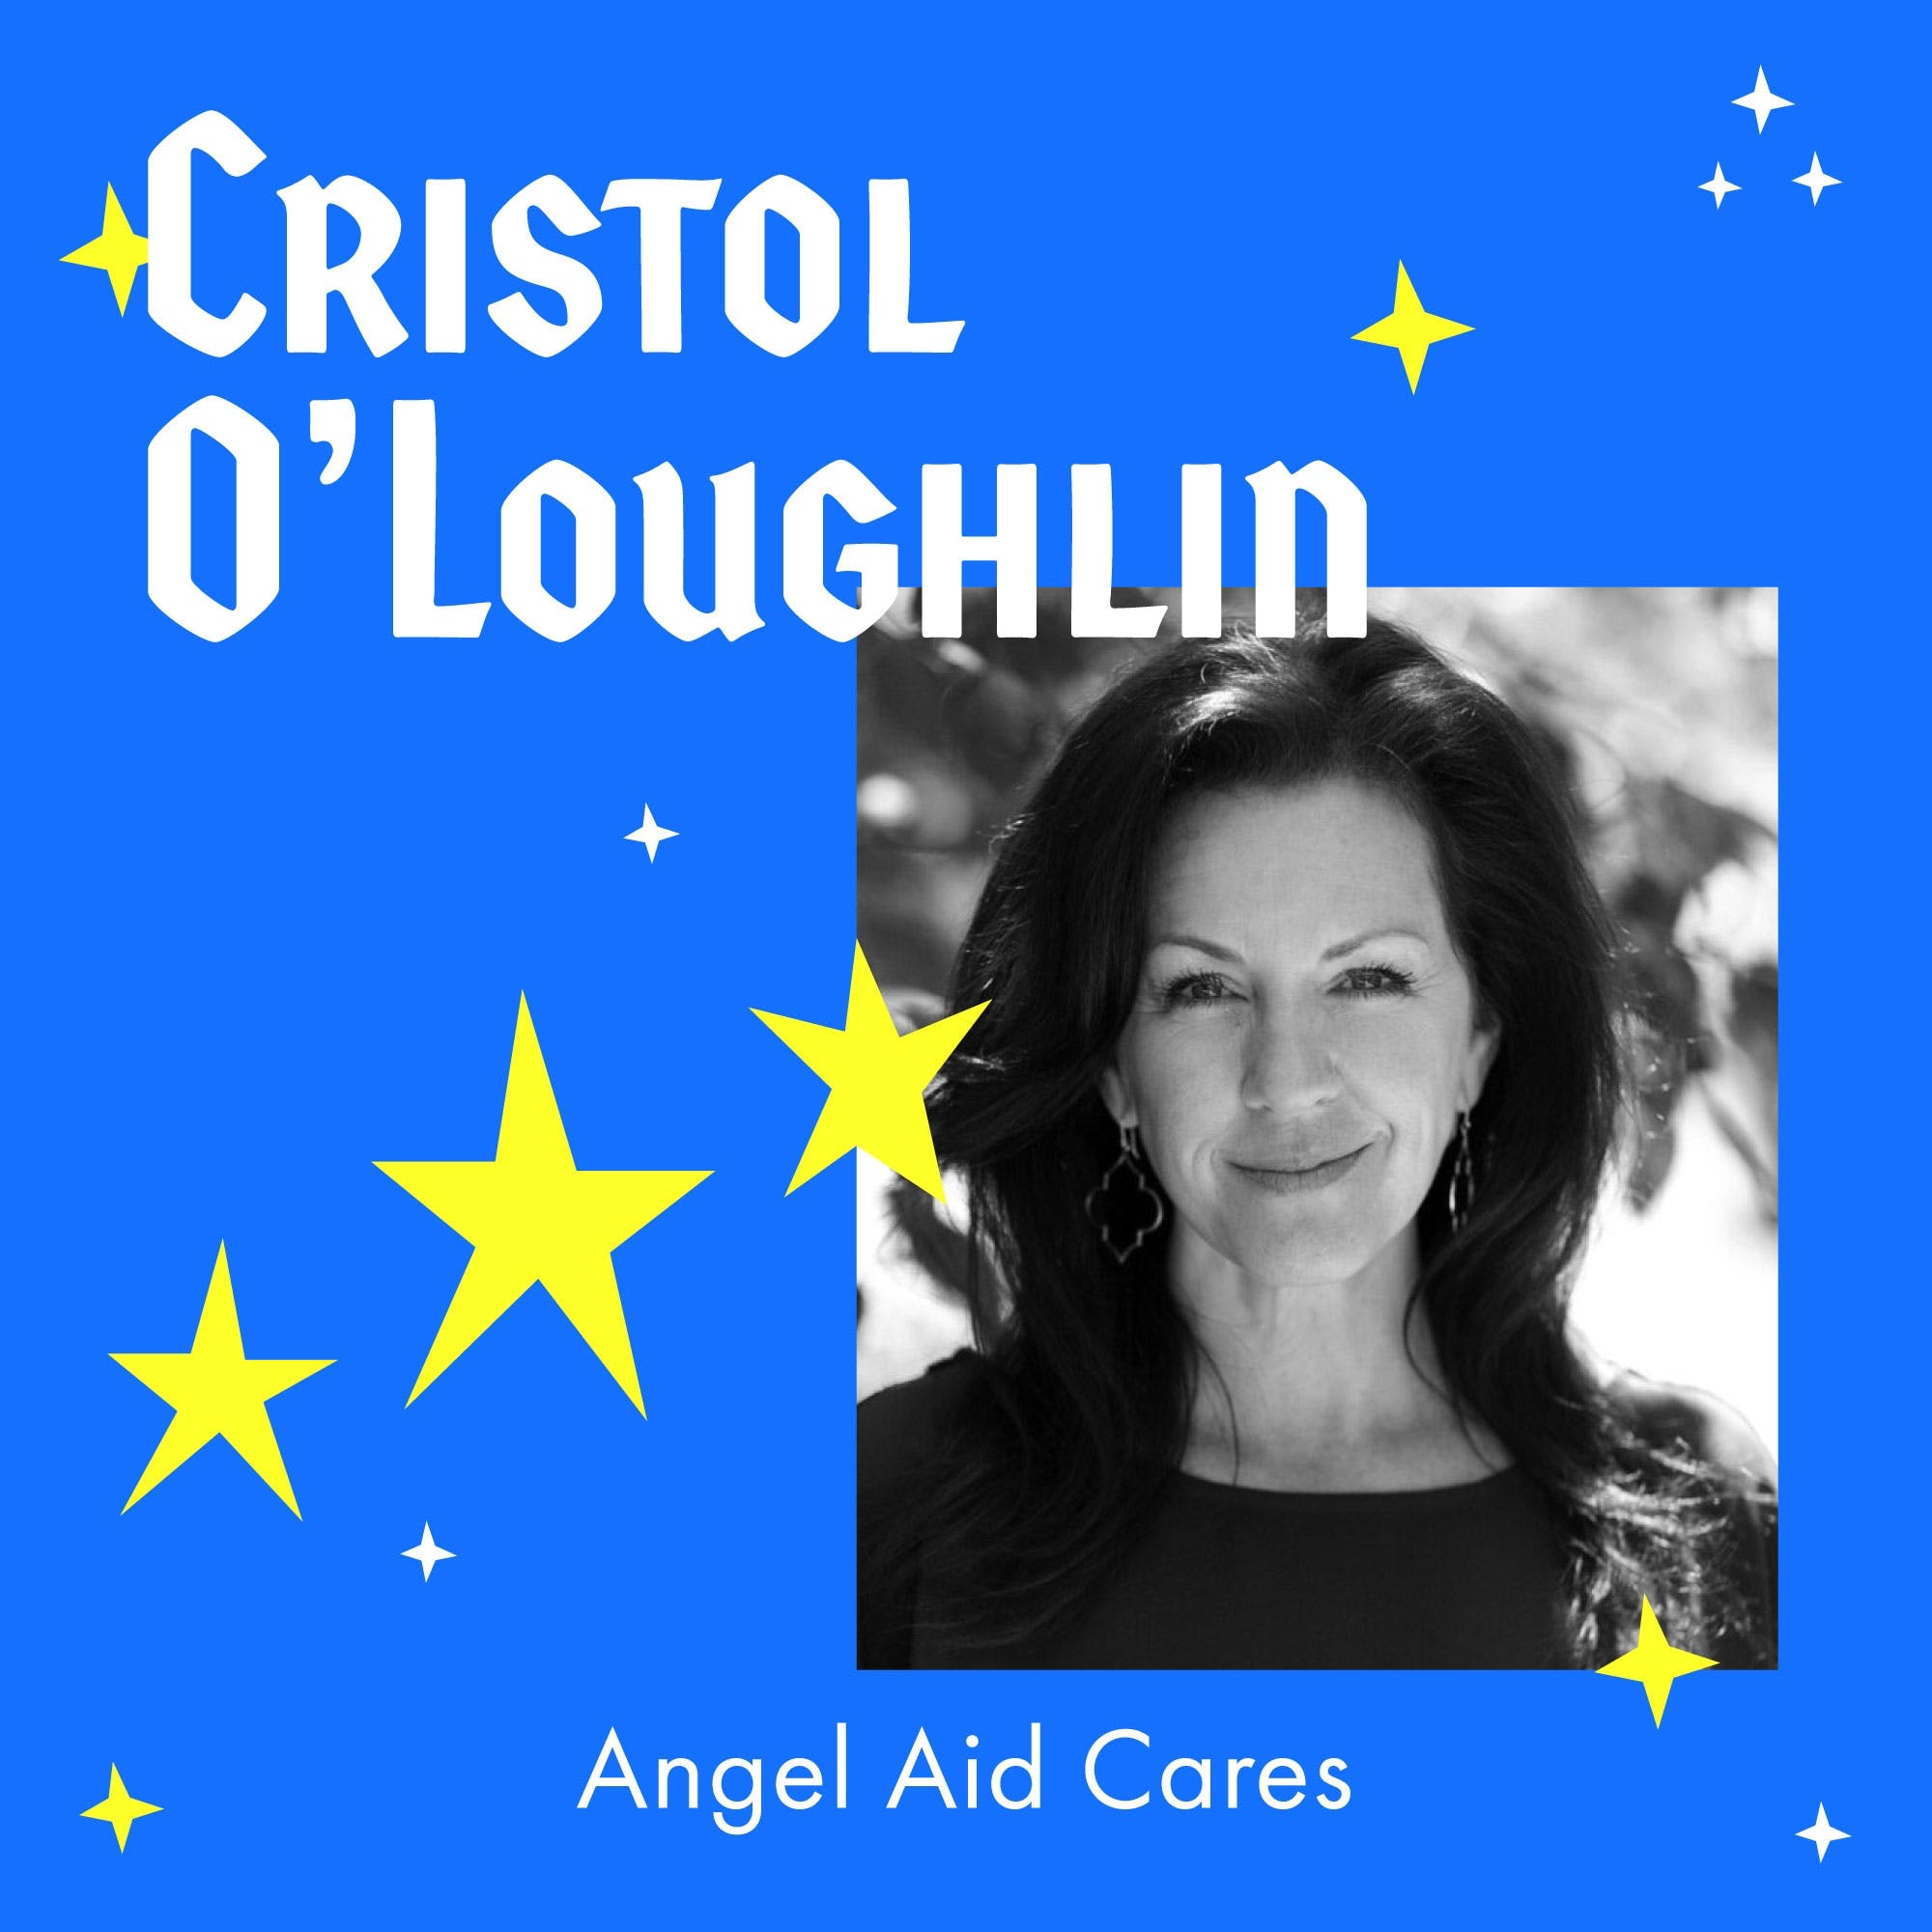 Relief and Inspiration for Mothers of Children with Rare Diseases with Angel Aid Cares Founder – Cristol O'Loughlin